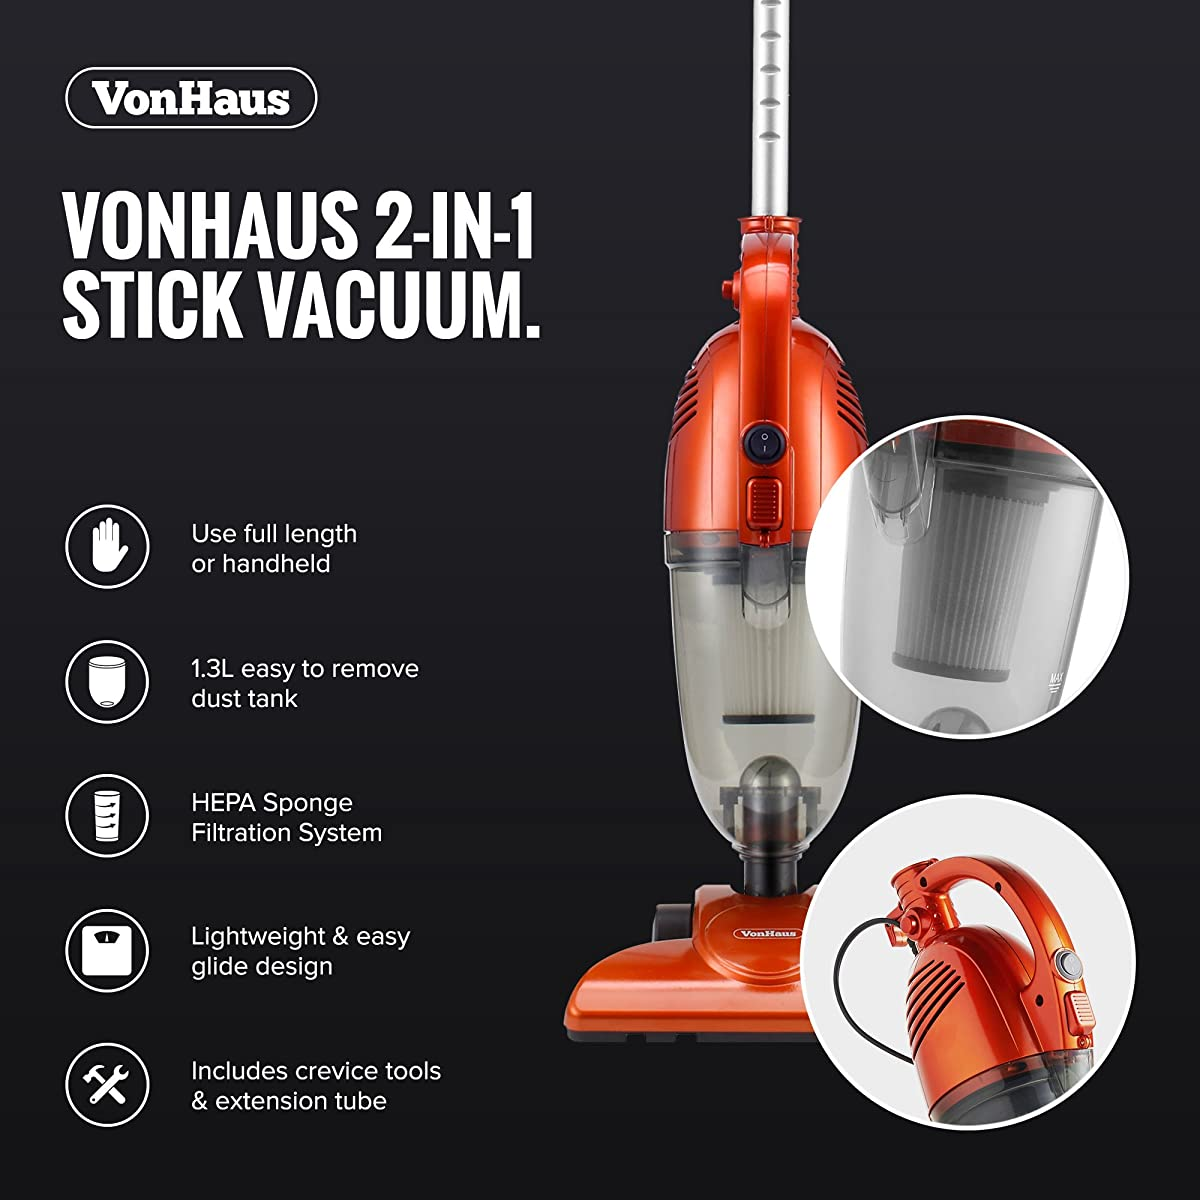 VonHaus 600W 2-in-1 Corded Upright Stick & Handheld Vacuum Cleaner with HEPA Filtration - Includes Crevice Tool & Brush Accessories